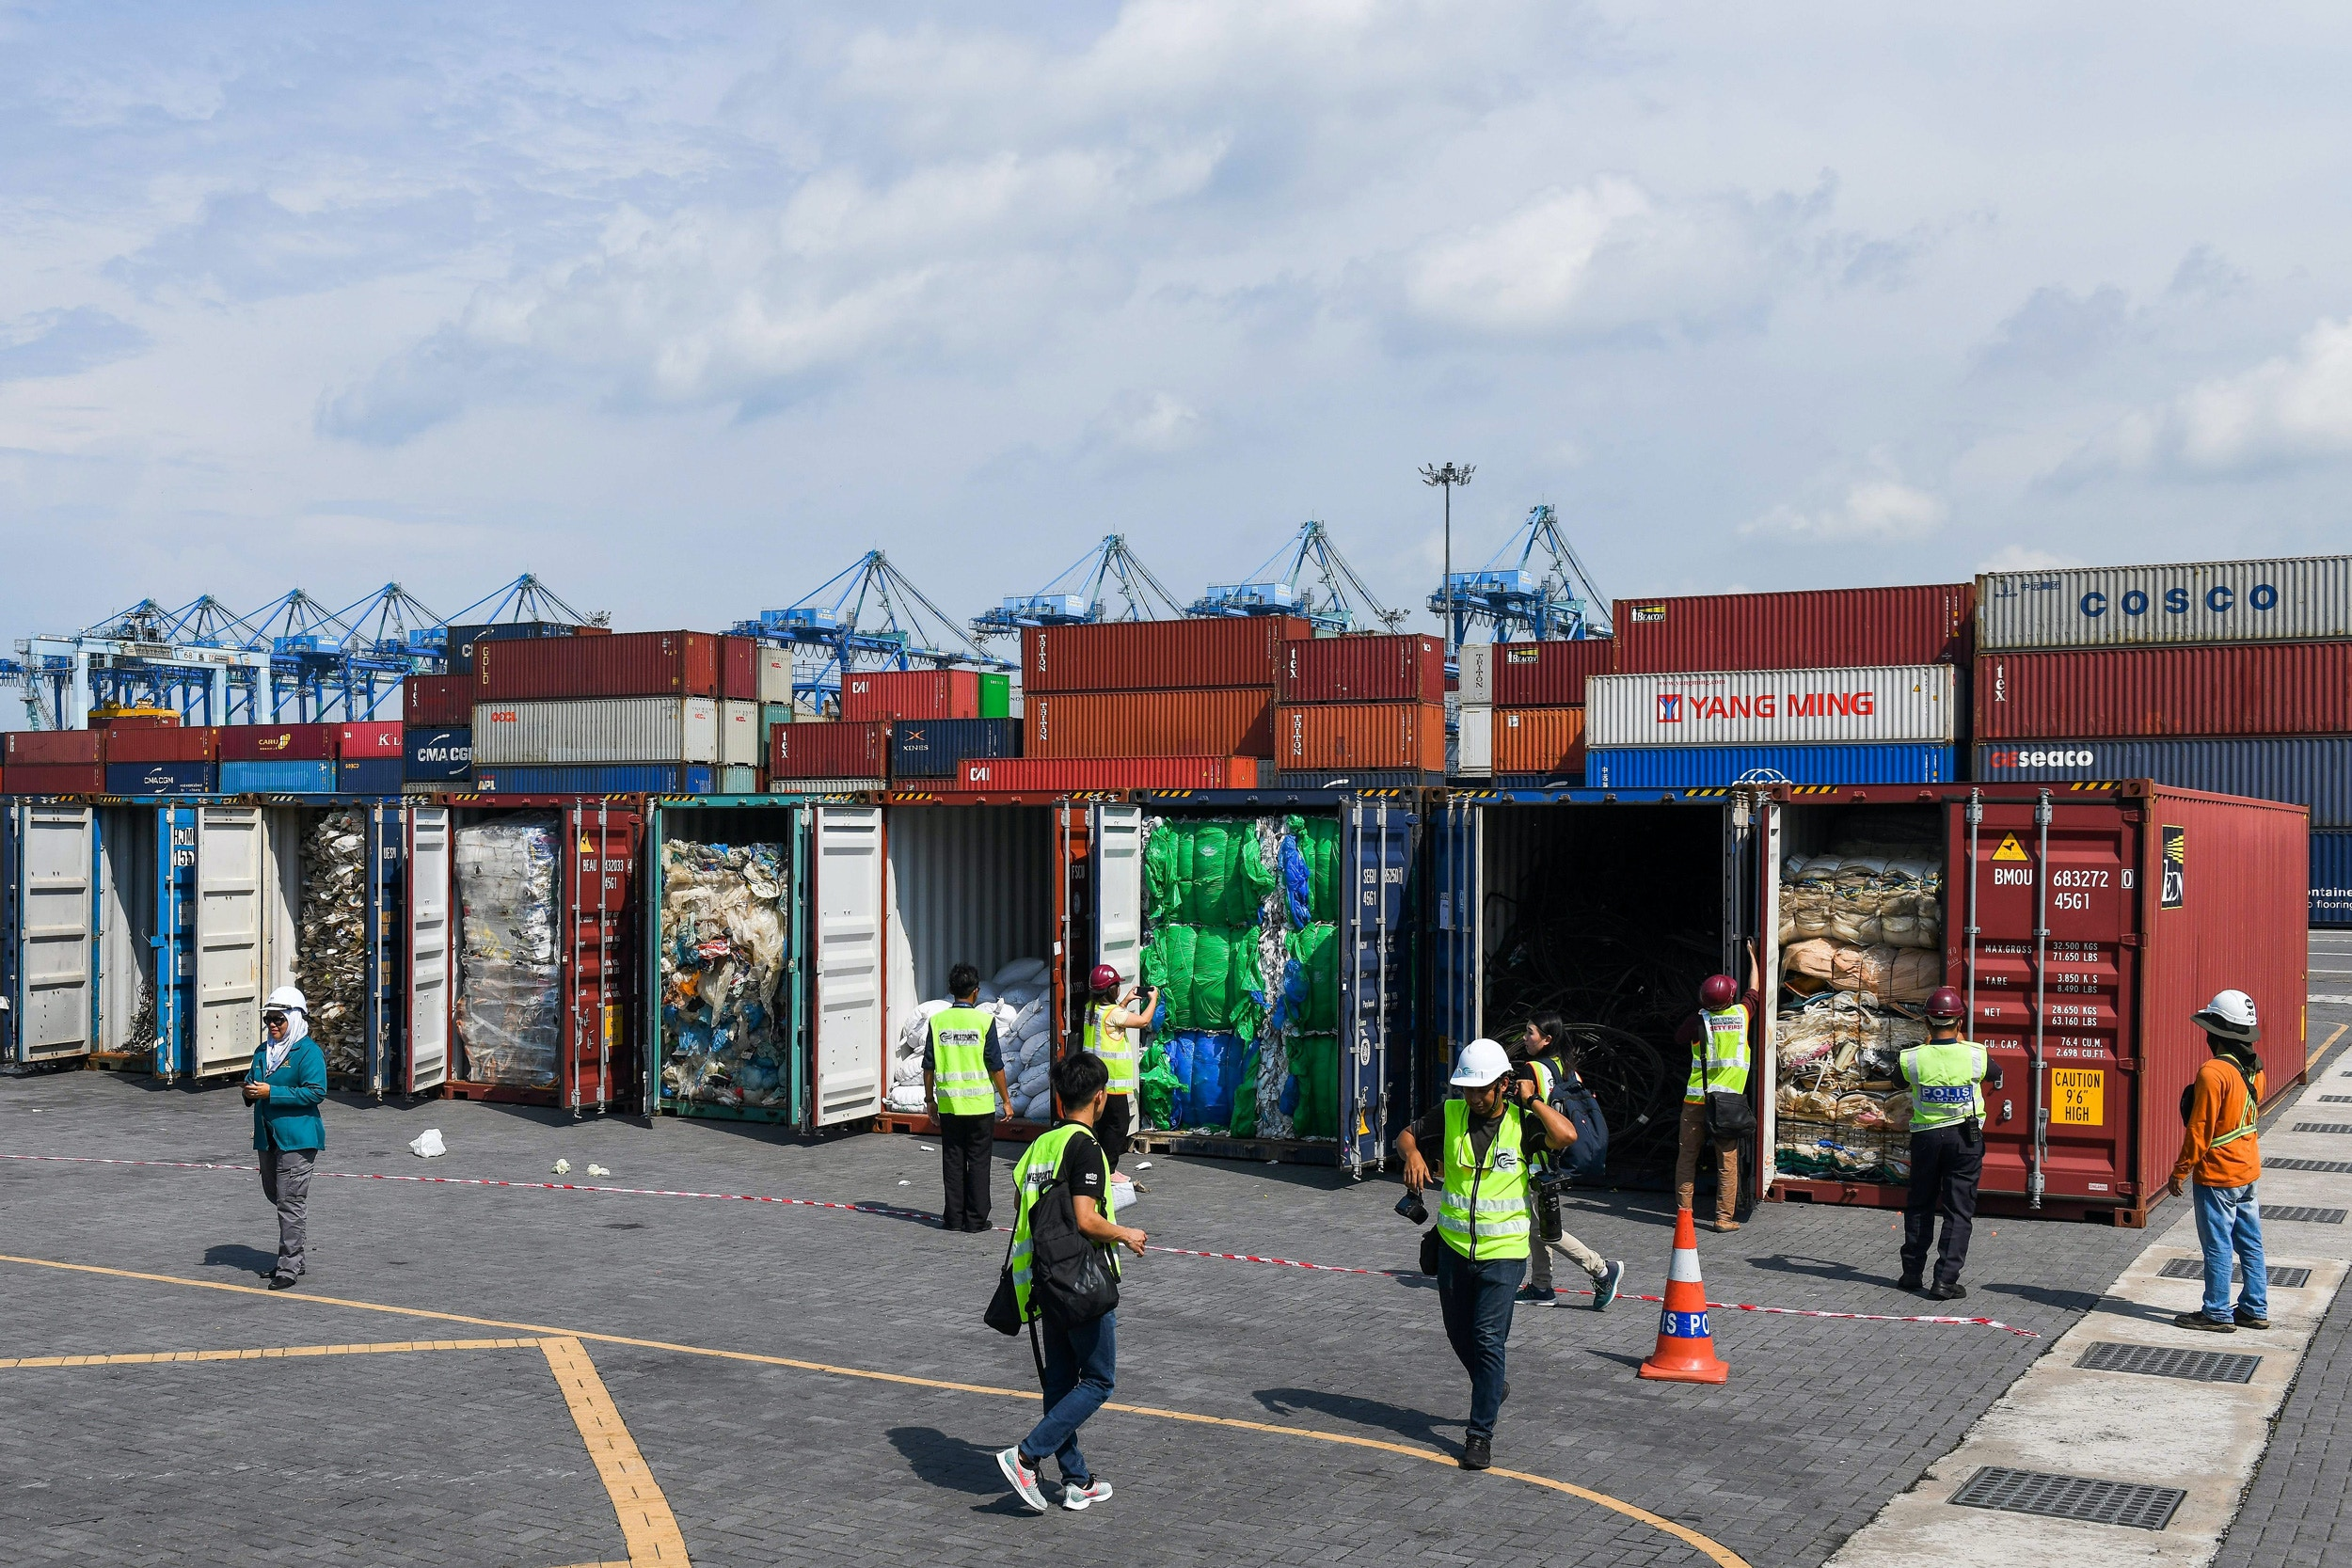 Malaysian officials and journalists inspect containers filled with plastic waste shipment before sending back to the country of origin in Port Klang, west of Kuala Lumpur on May 28, 2019. (Photo by Mohd RASFAN / AFP)        (Photo credit should read MOHD RASFAN/AFP via Getty Images)